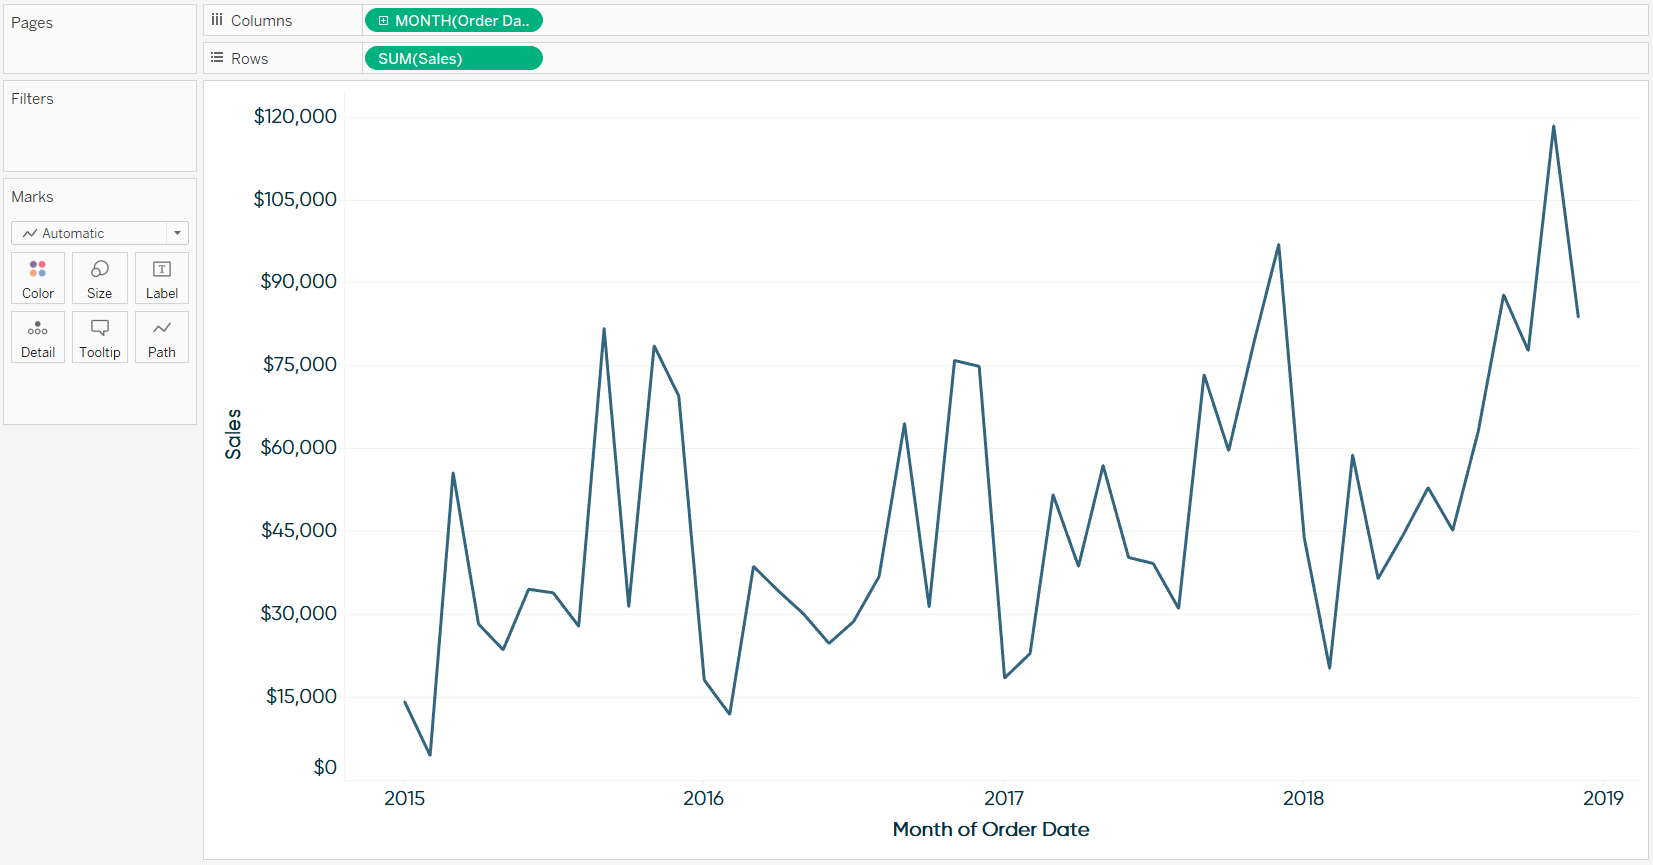 Sales by Continuous Month of Order Date Line Graph in Tableau